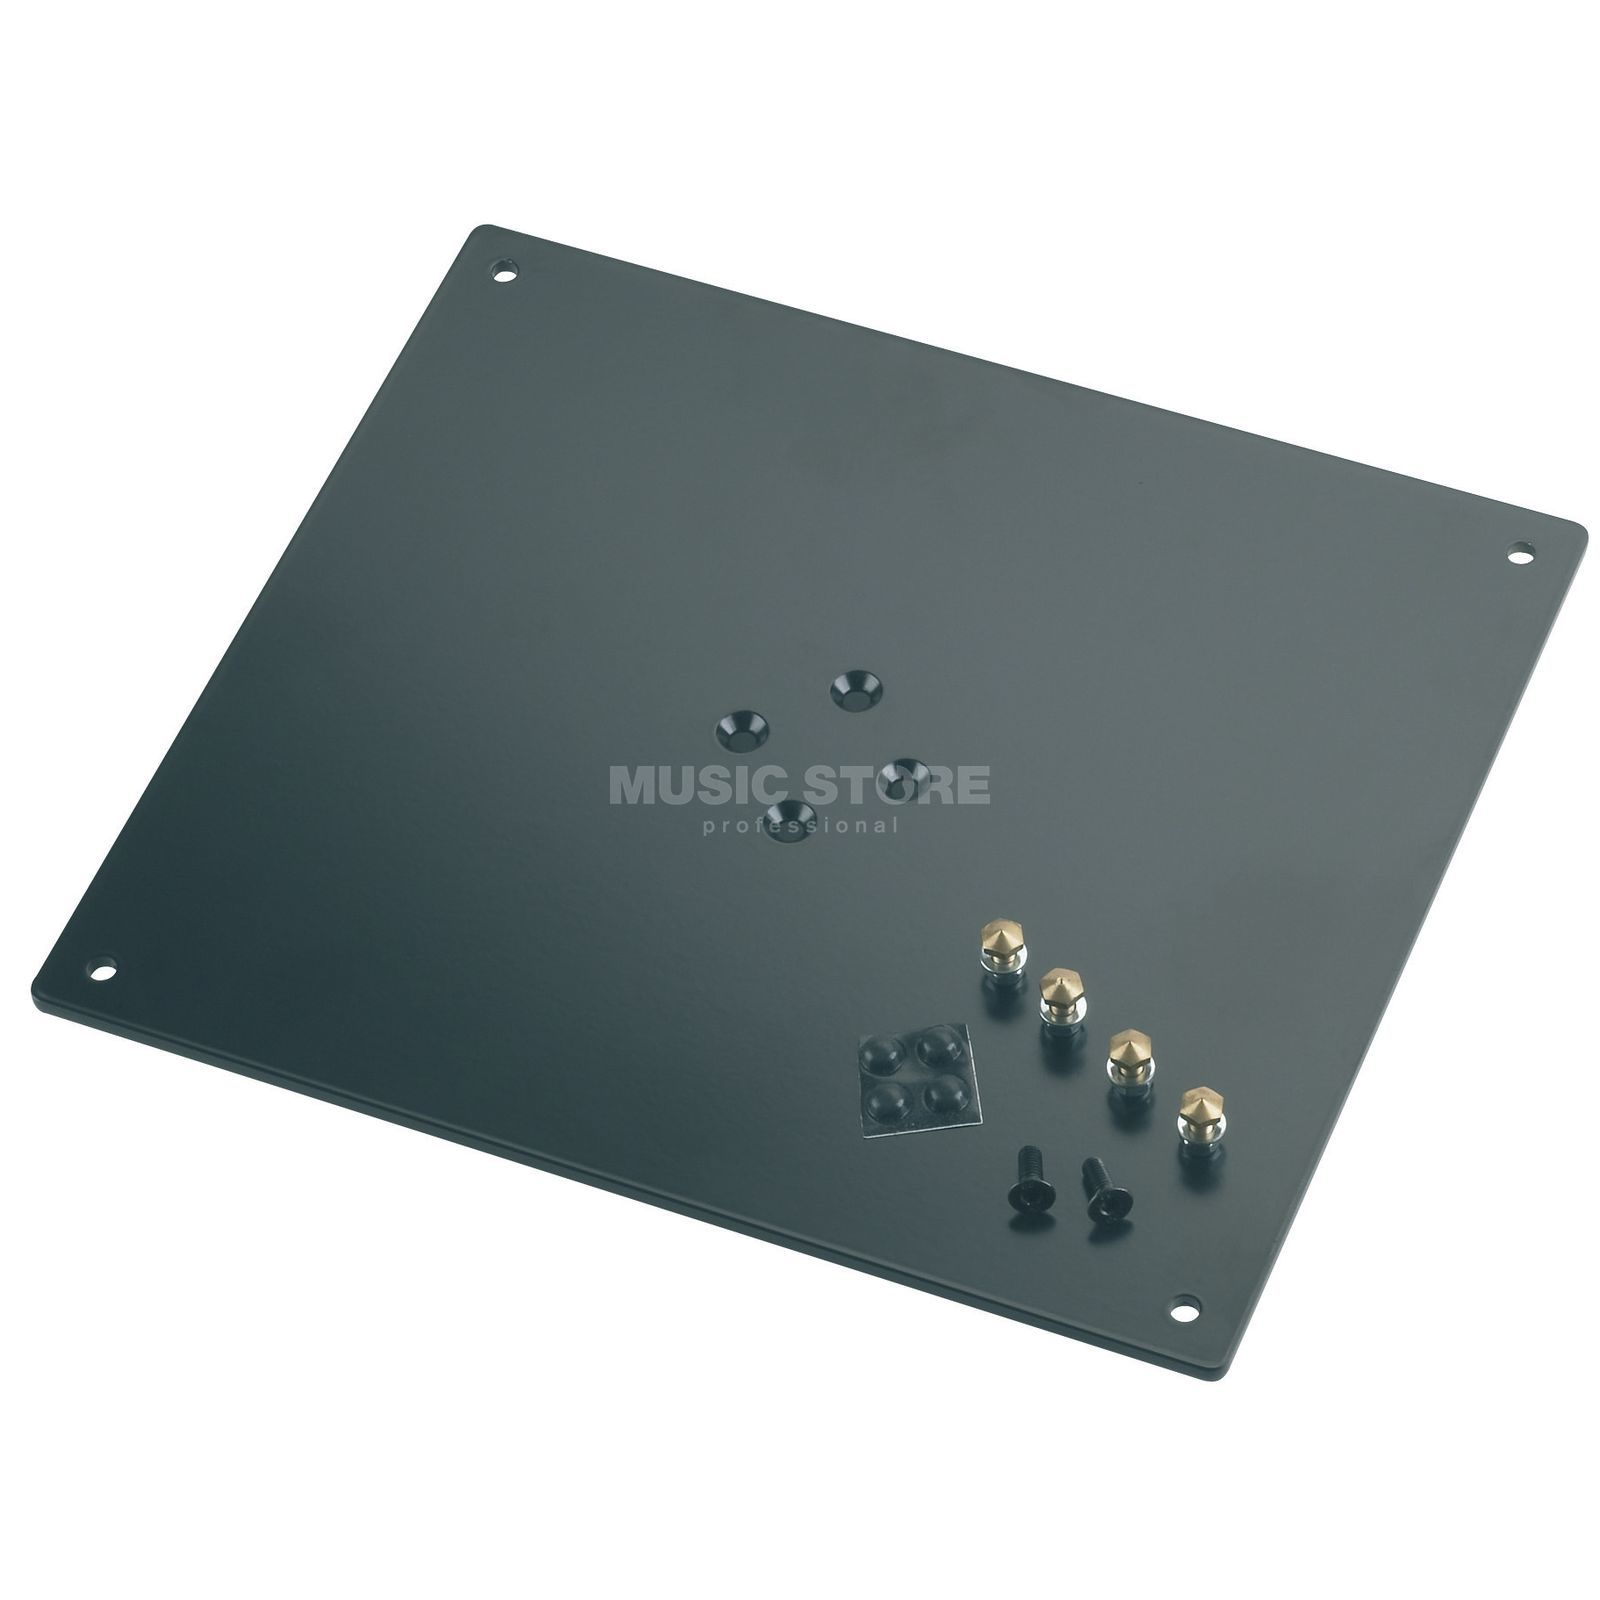 König & Meyer 26792-032 Mounting Plate Black, for 26795 + 26790 Produktbillede